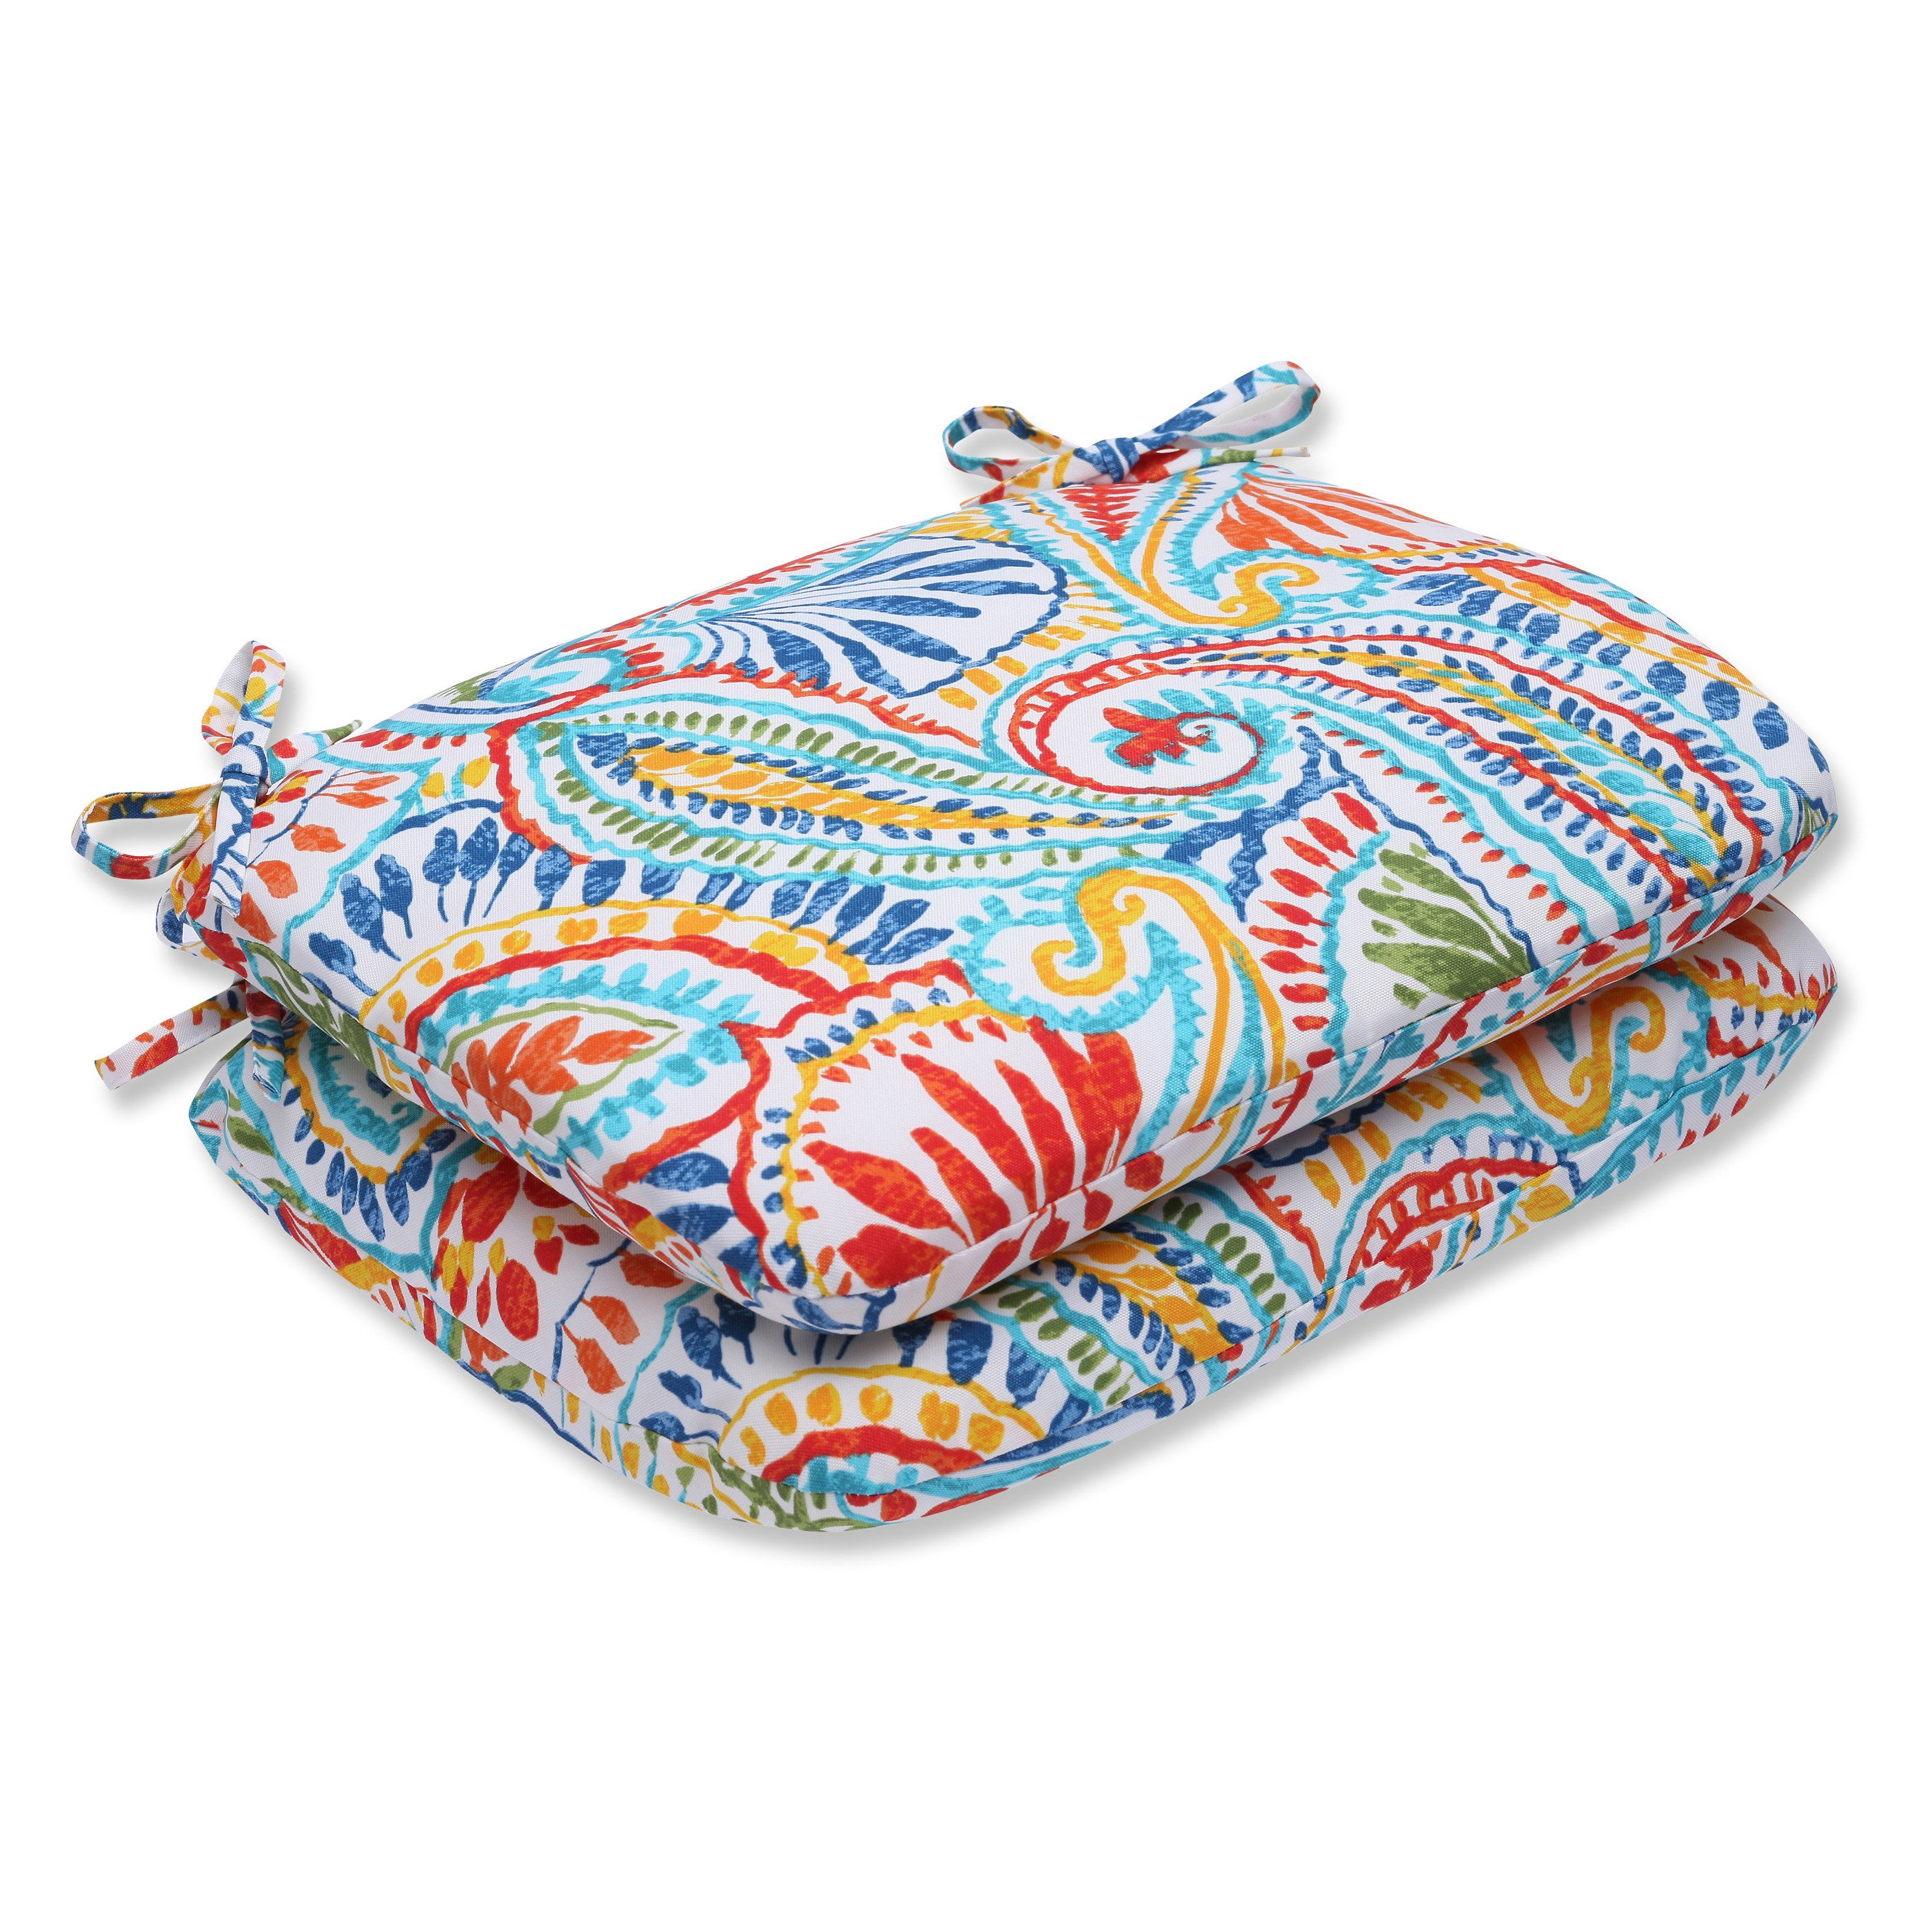 Pillow Perfect Ummi Outdoor Rounded Corners 18.5 x 15.5 in. Chair Seat Cushion - Set of 2 - 572642